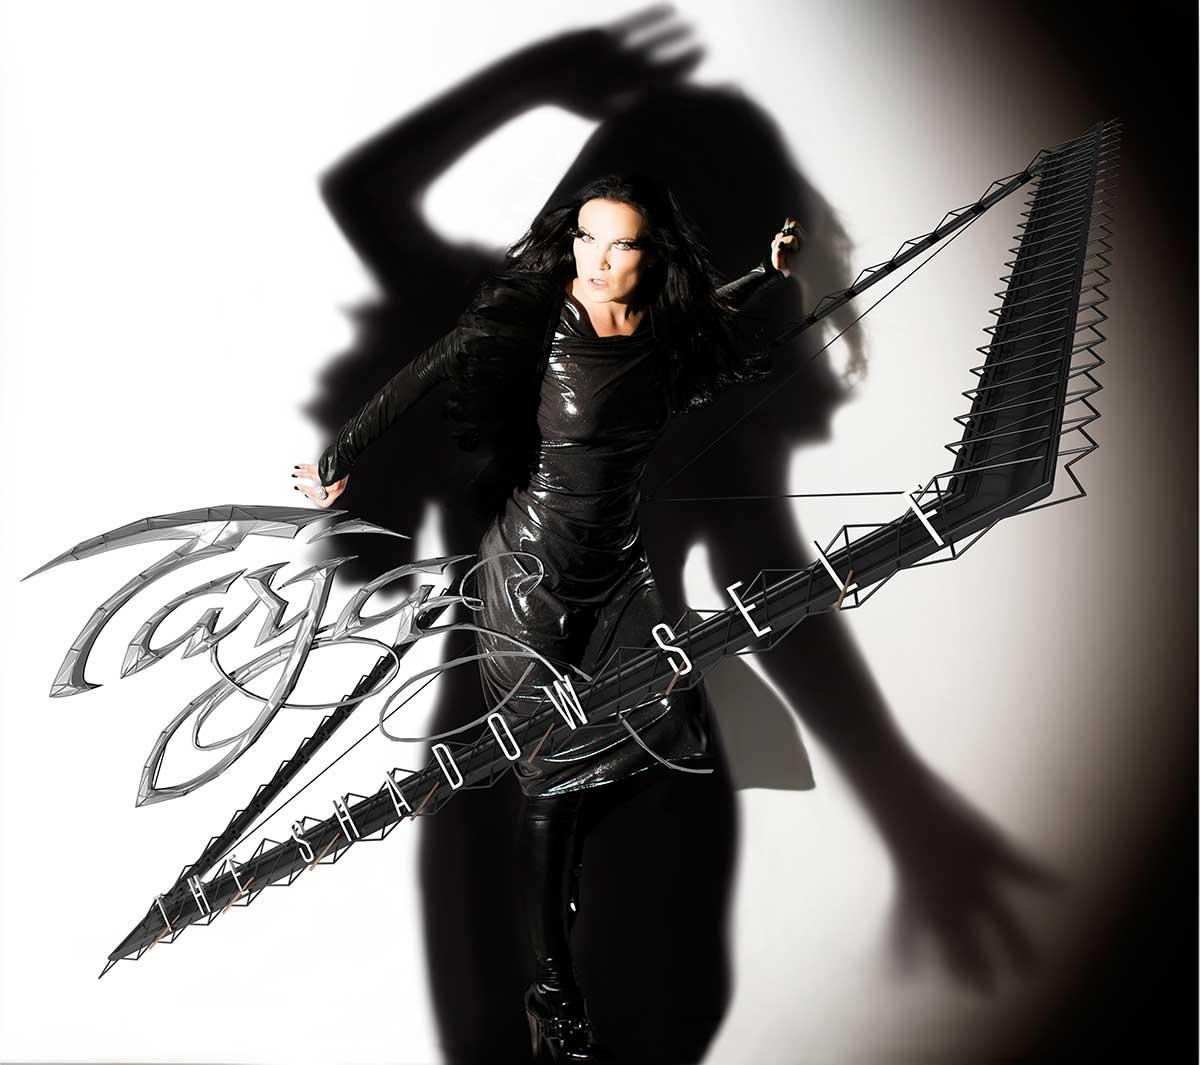 Tarja: The Shadow Self (2016) Book Cover